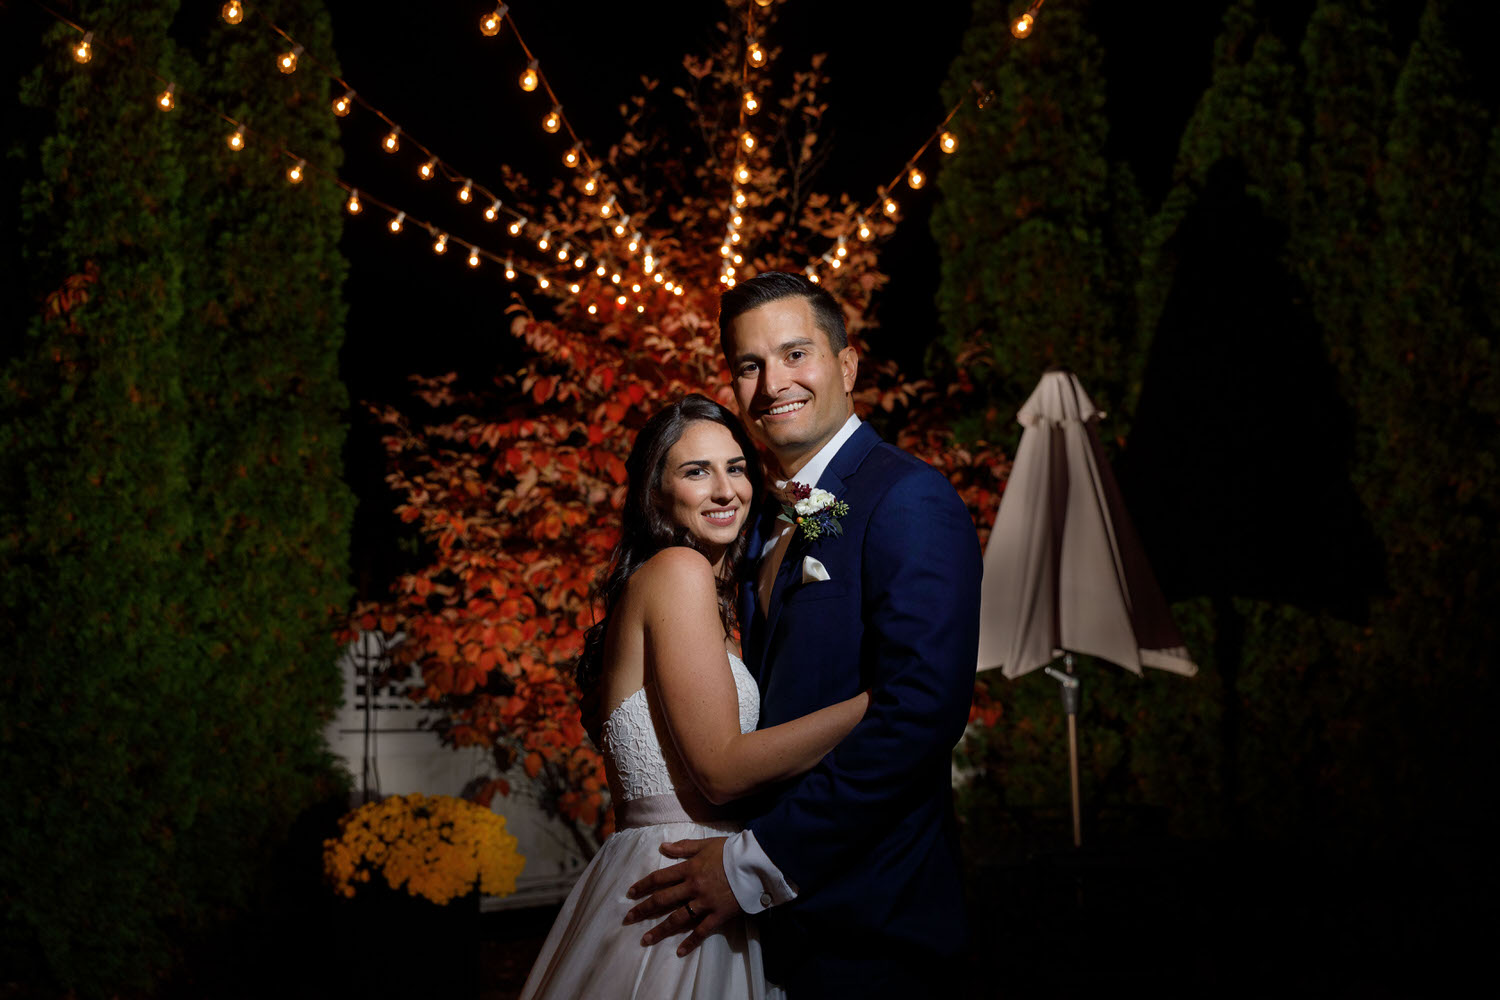 Bride and groom at night with string lights